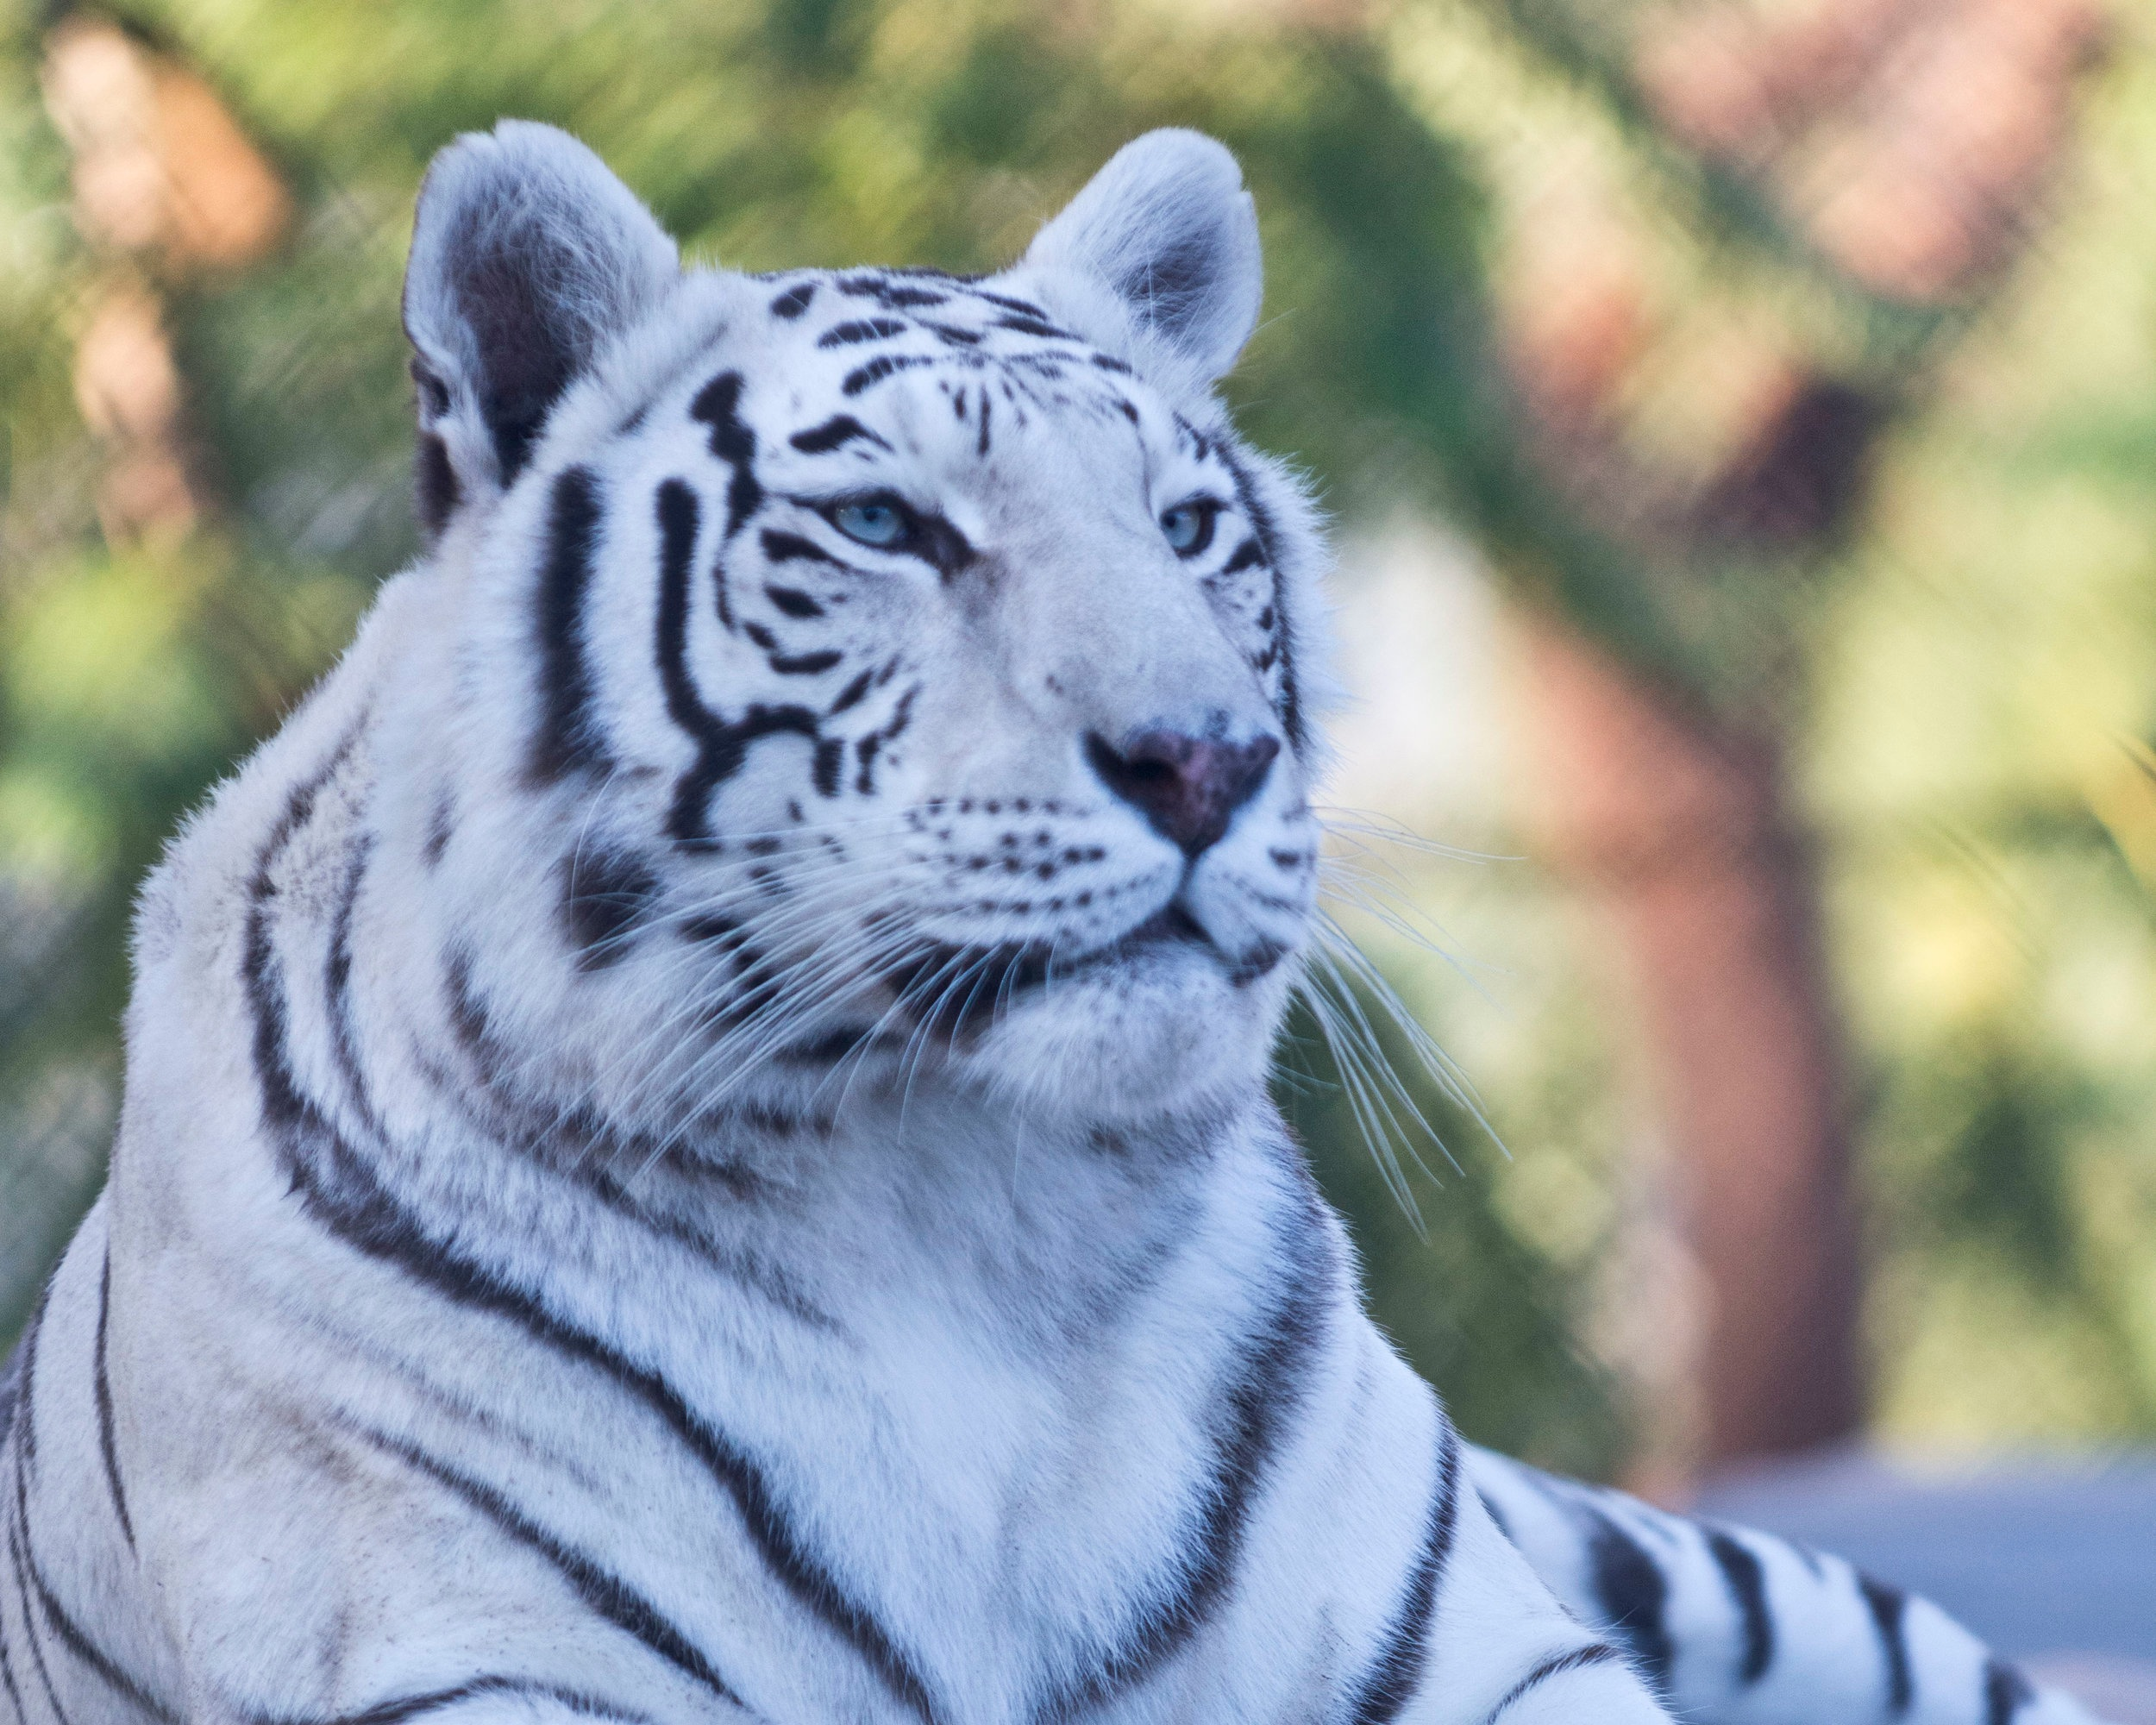 tigers_3_20170915_1335695256-view=image&format=raw&type=orig&id=182.jpg